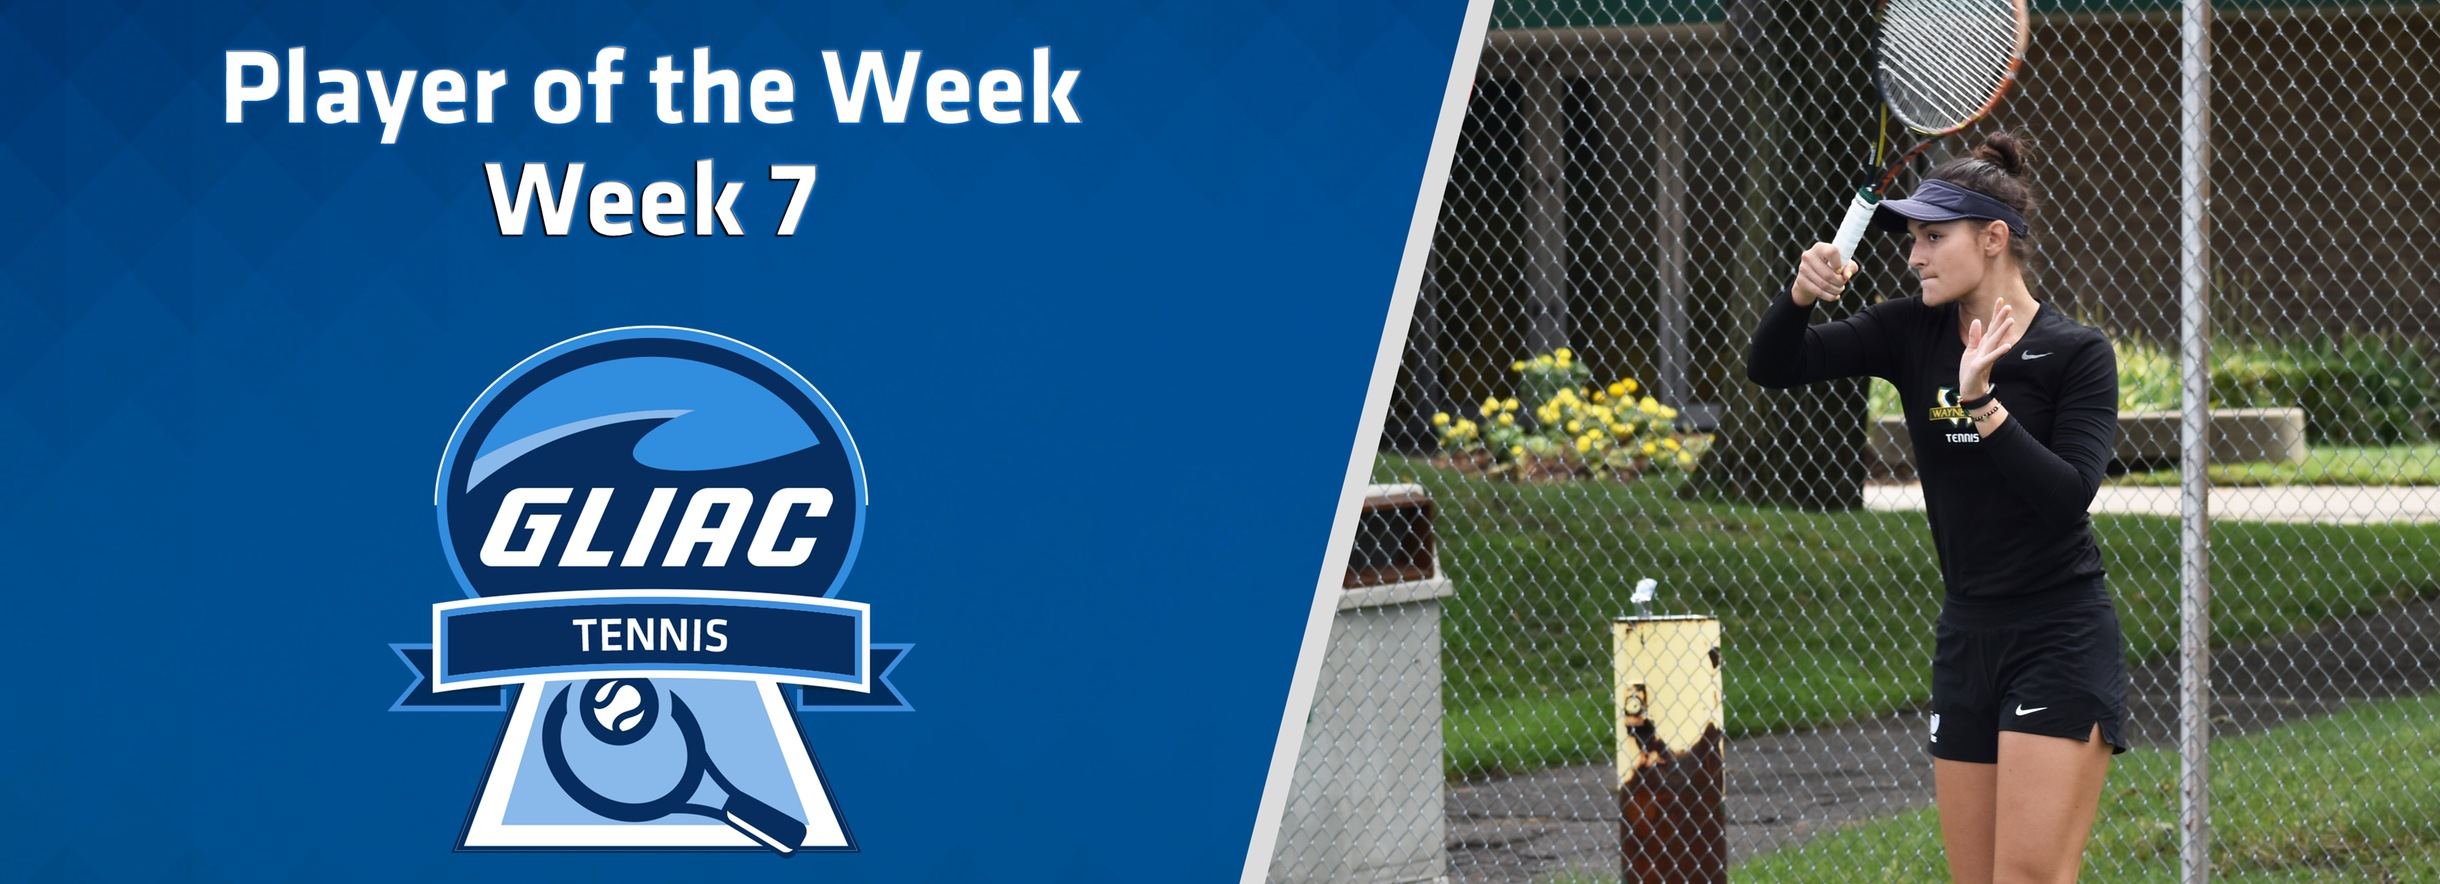 WSU's Da-Silva Claims GLIAC Women's Tennis Player of the Week Honors